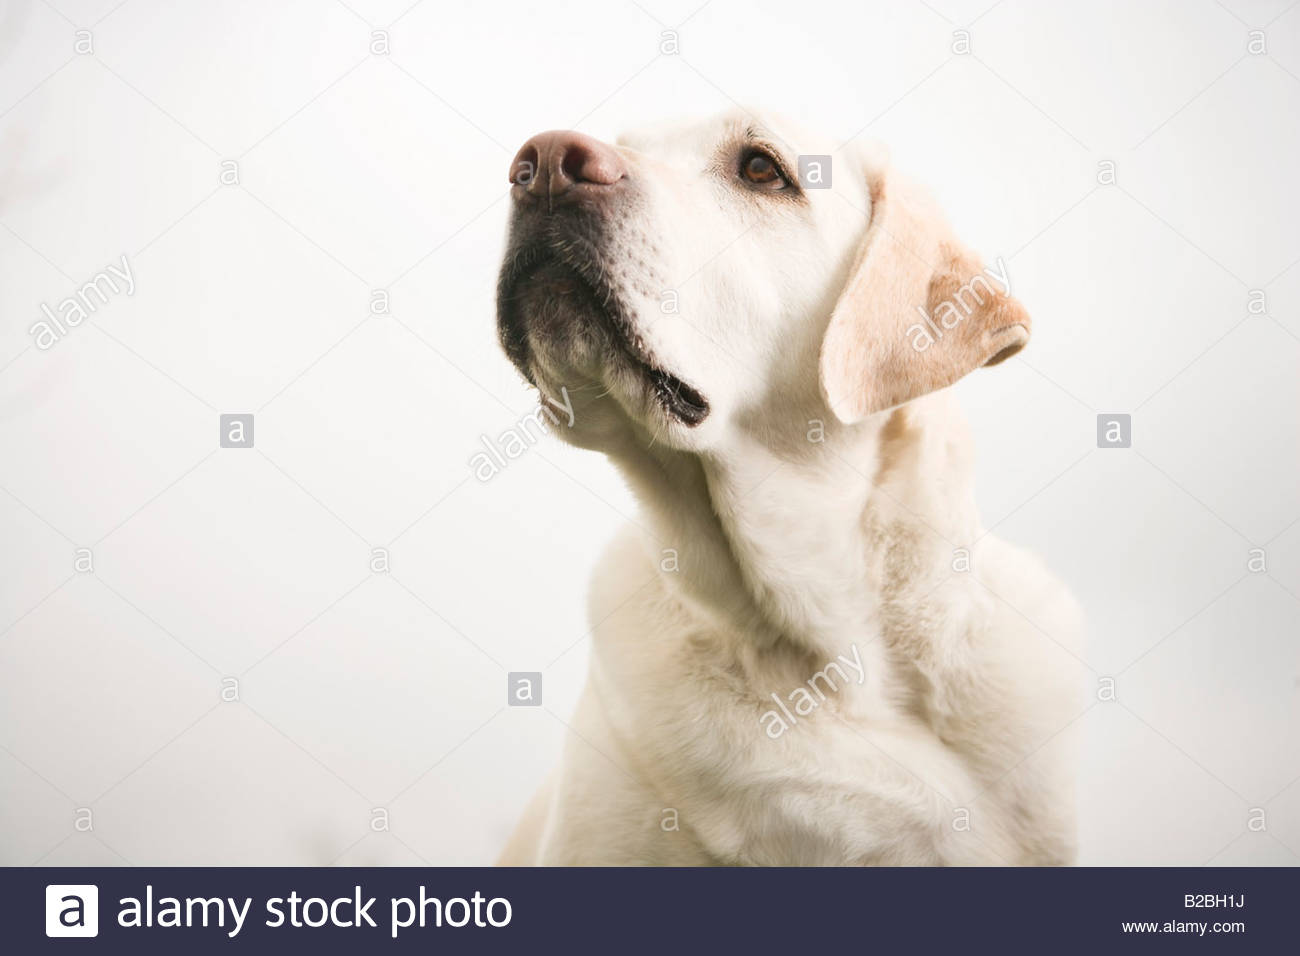 Close up of dog - Stock Image